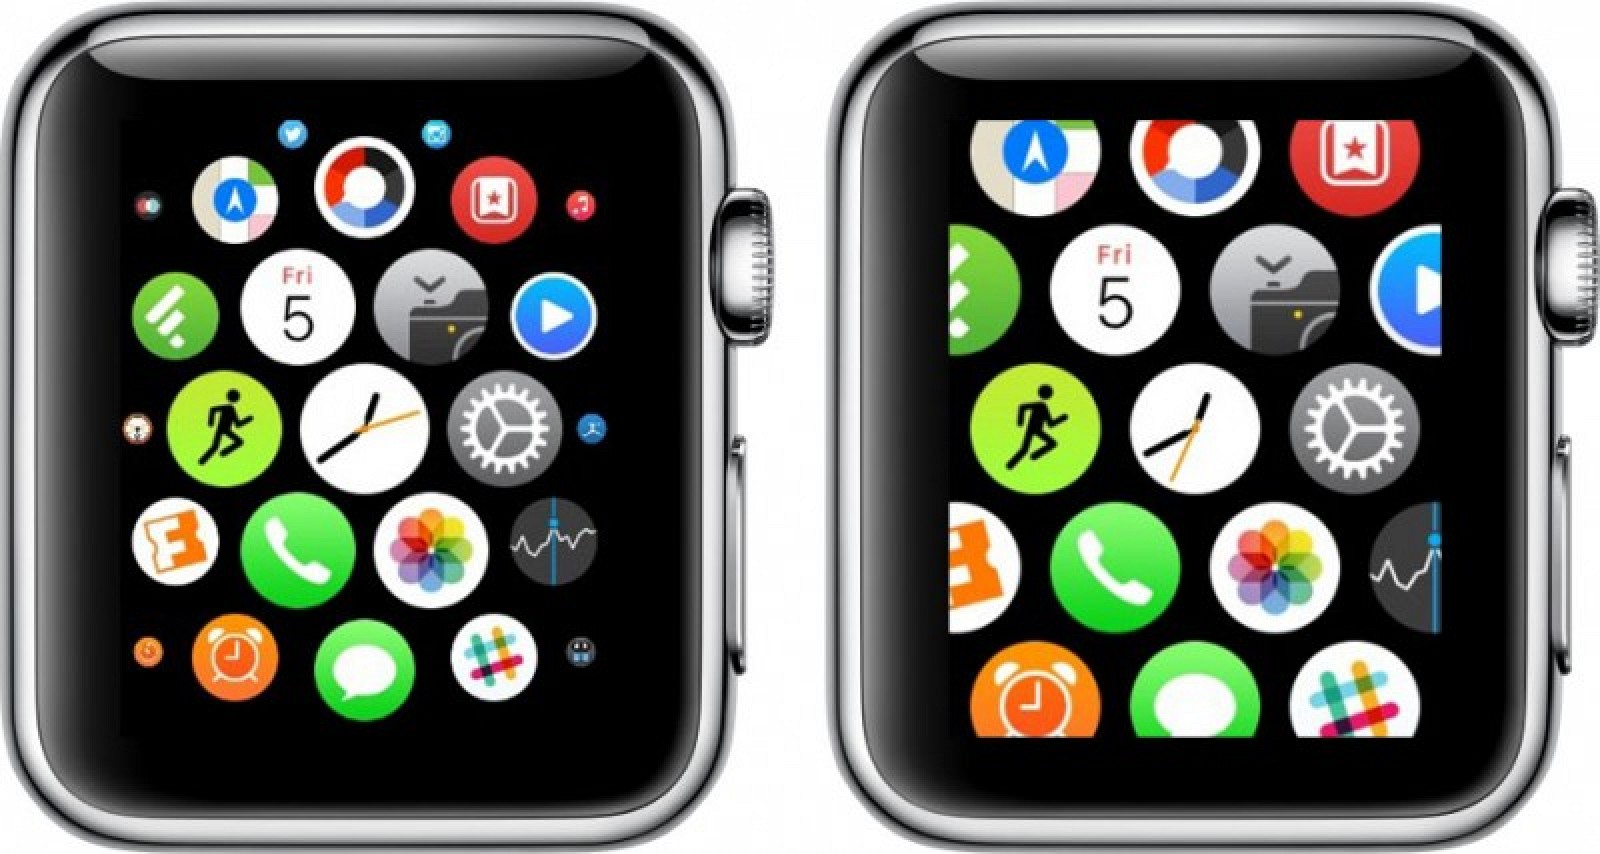 How to Make Icons and Fonts Bigger on Apple Watch